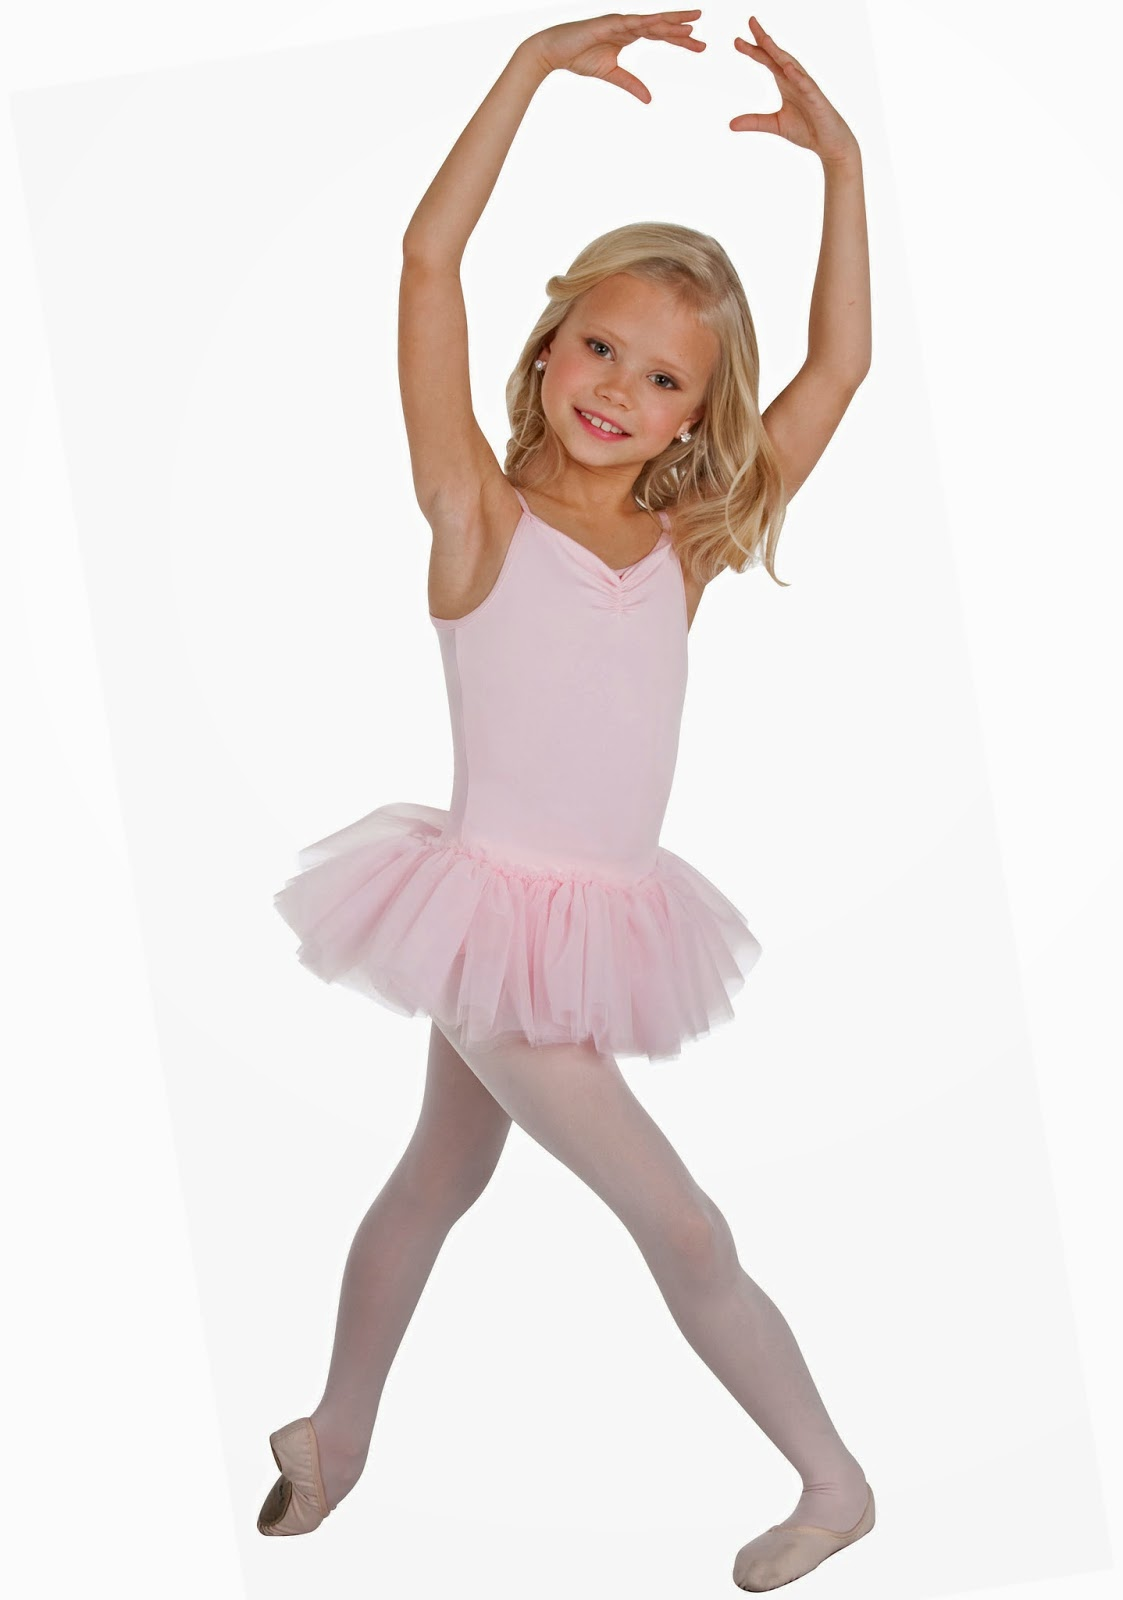 for ballet costumes most people stick with a pink theme sometimes adults will go for white or black to get a black swan look